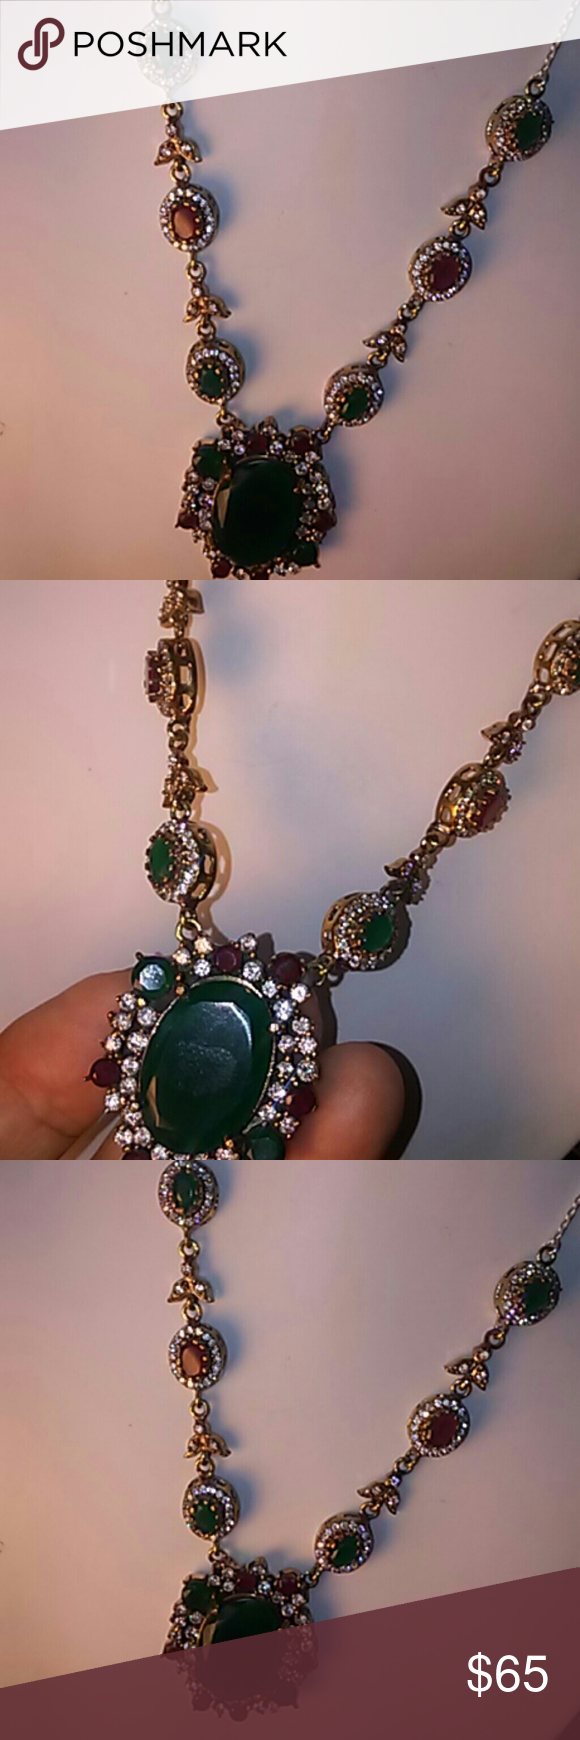 Firm PriceTurkish high quality elegant necklace. This necklace is unique ,925 sterling silver and bronze. Has 4 Emerald stone 2 ruby stone.has pendant w.big Emerald stone ruby,and emerald and clear topaz.Mark 925.Beautiful. Piece.new no tag.long 20 inch.The emerald stone in the pendant long1 inch.color green,red,clear stone,and silver. Jewelry Necklaces